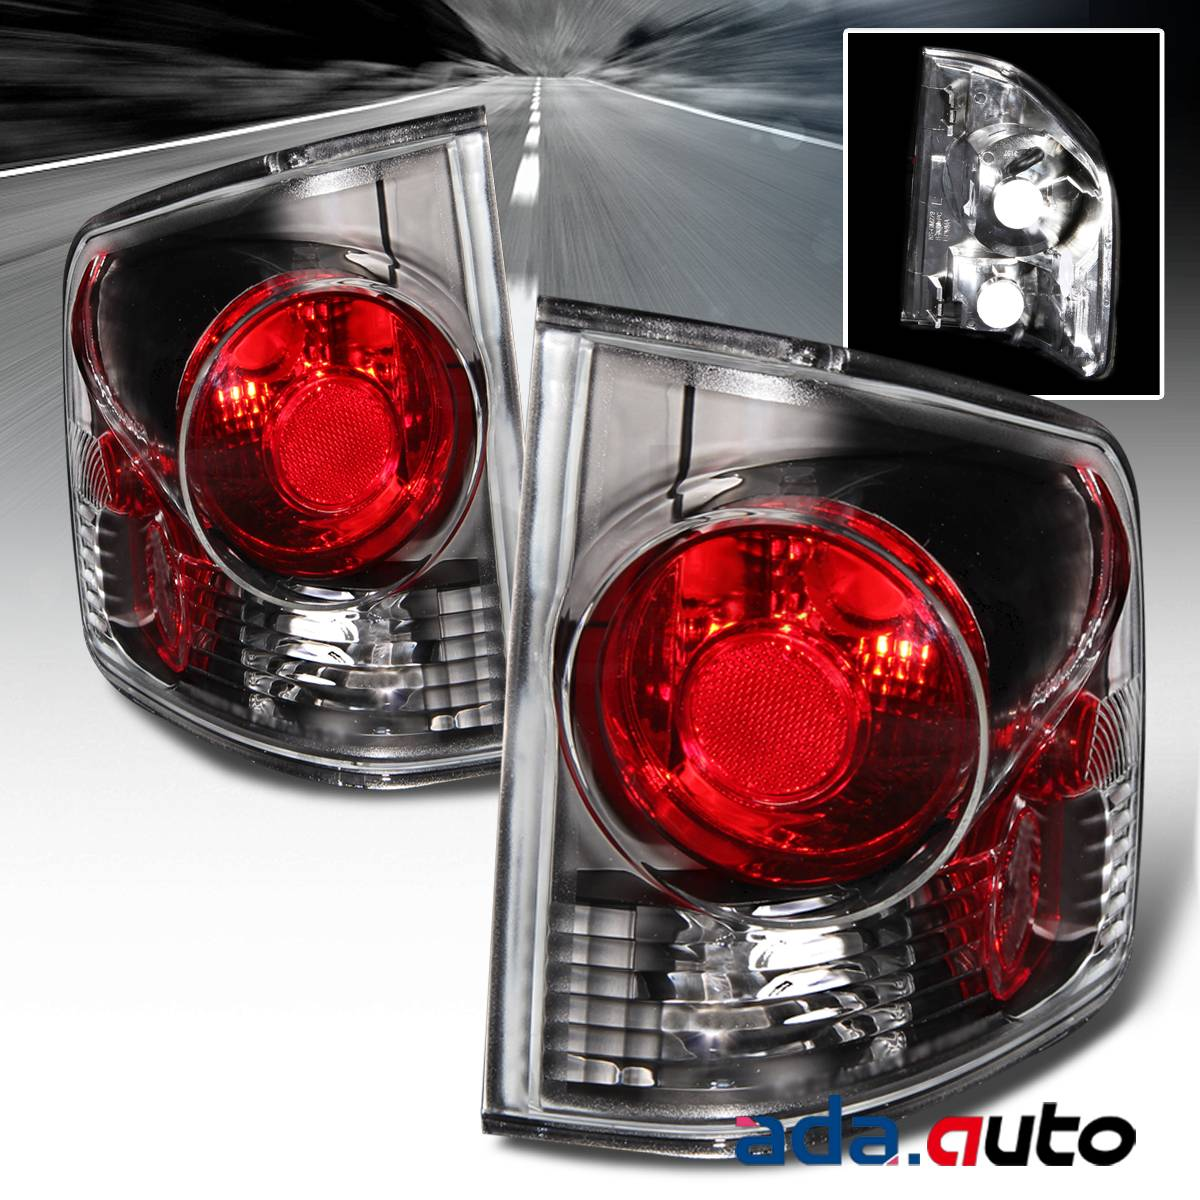 1994 Gmc Sonoma Black Tail Lights  U0026quot Mod G4 U0026quot  Pair